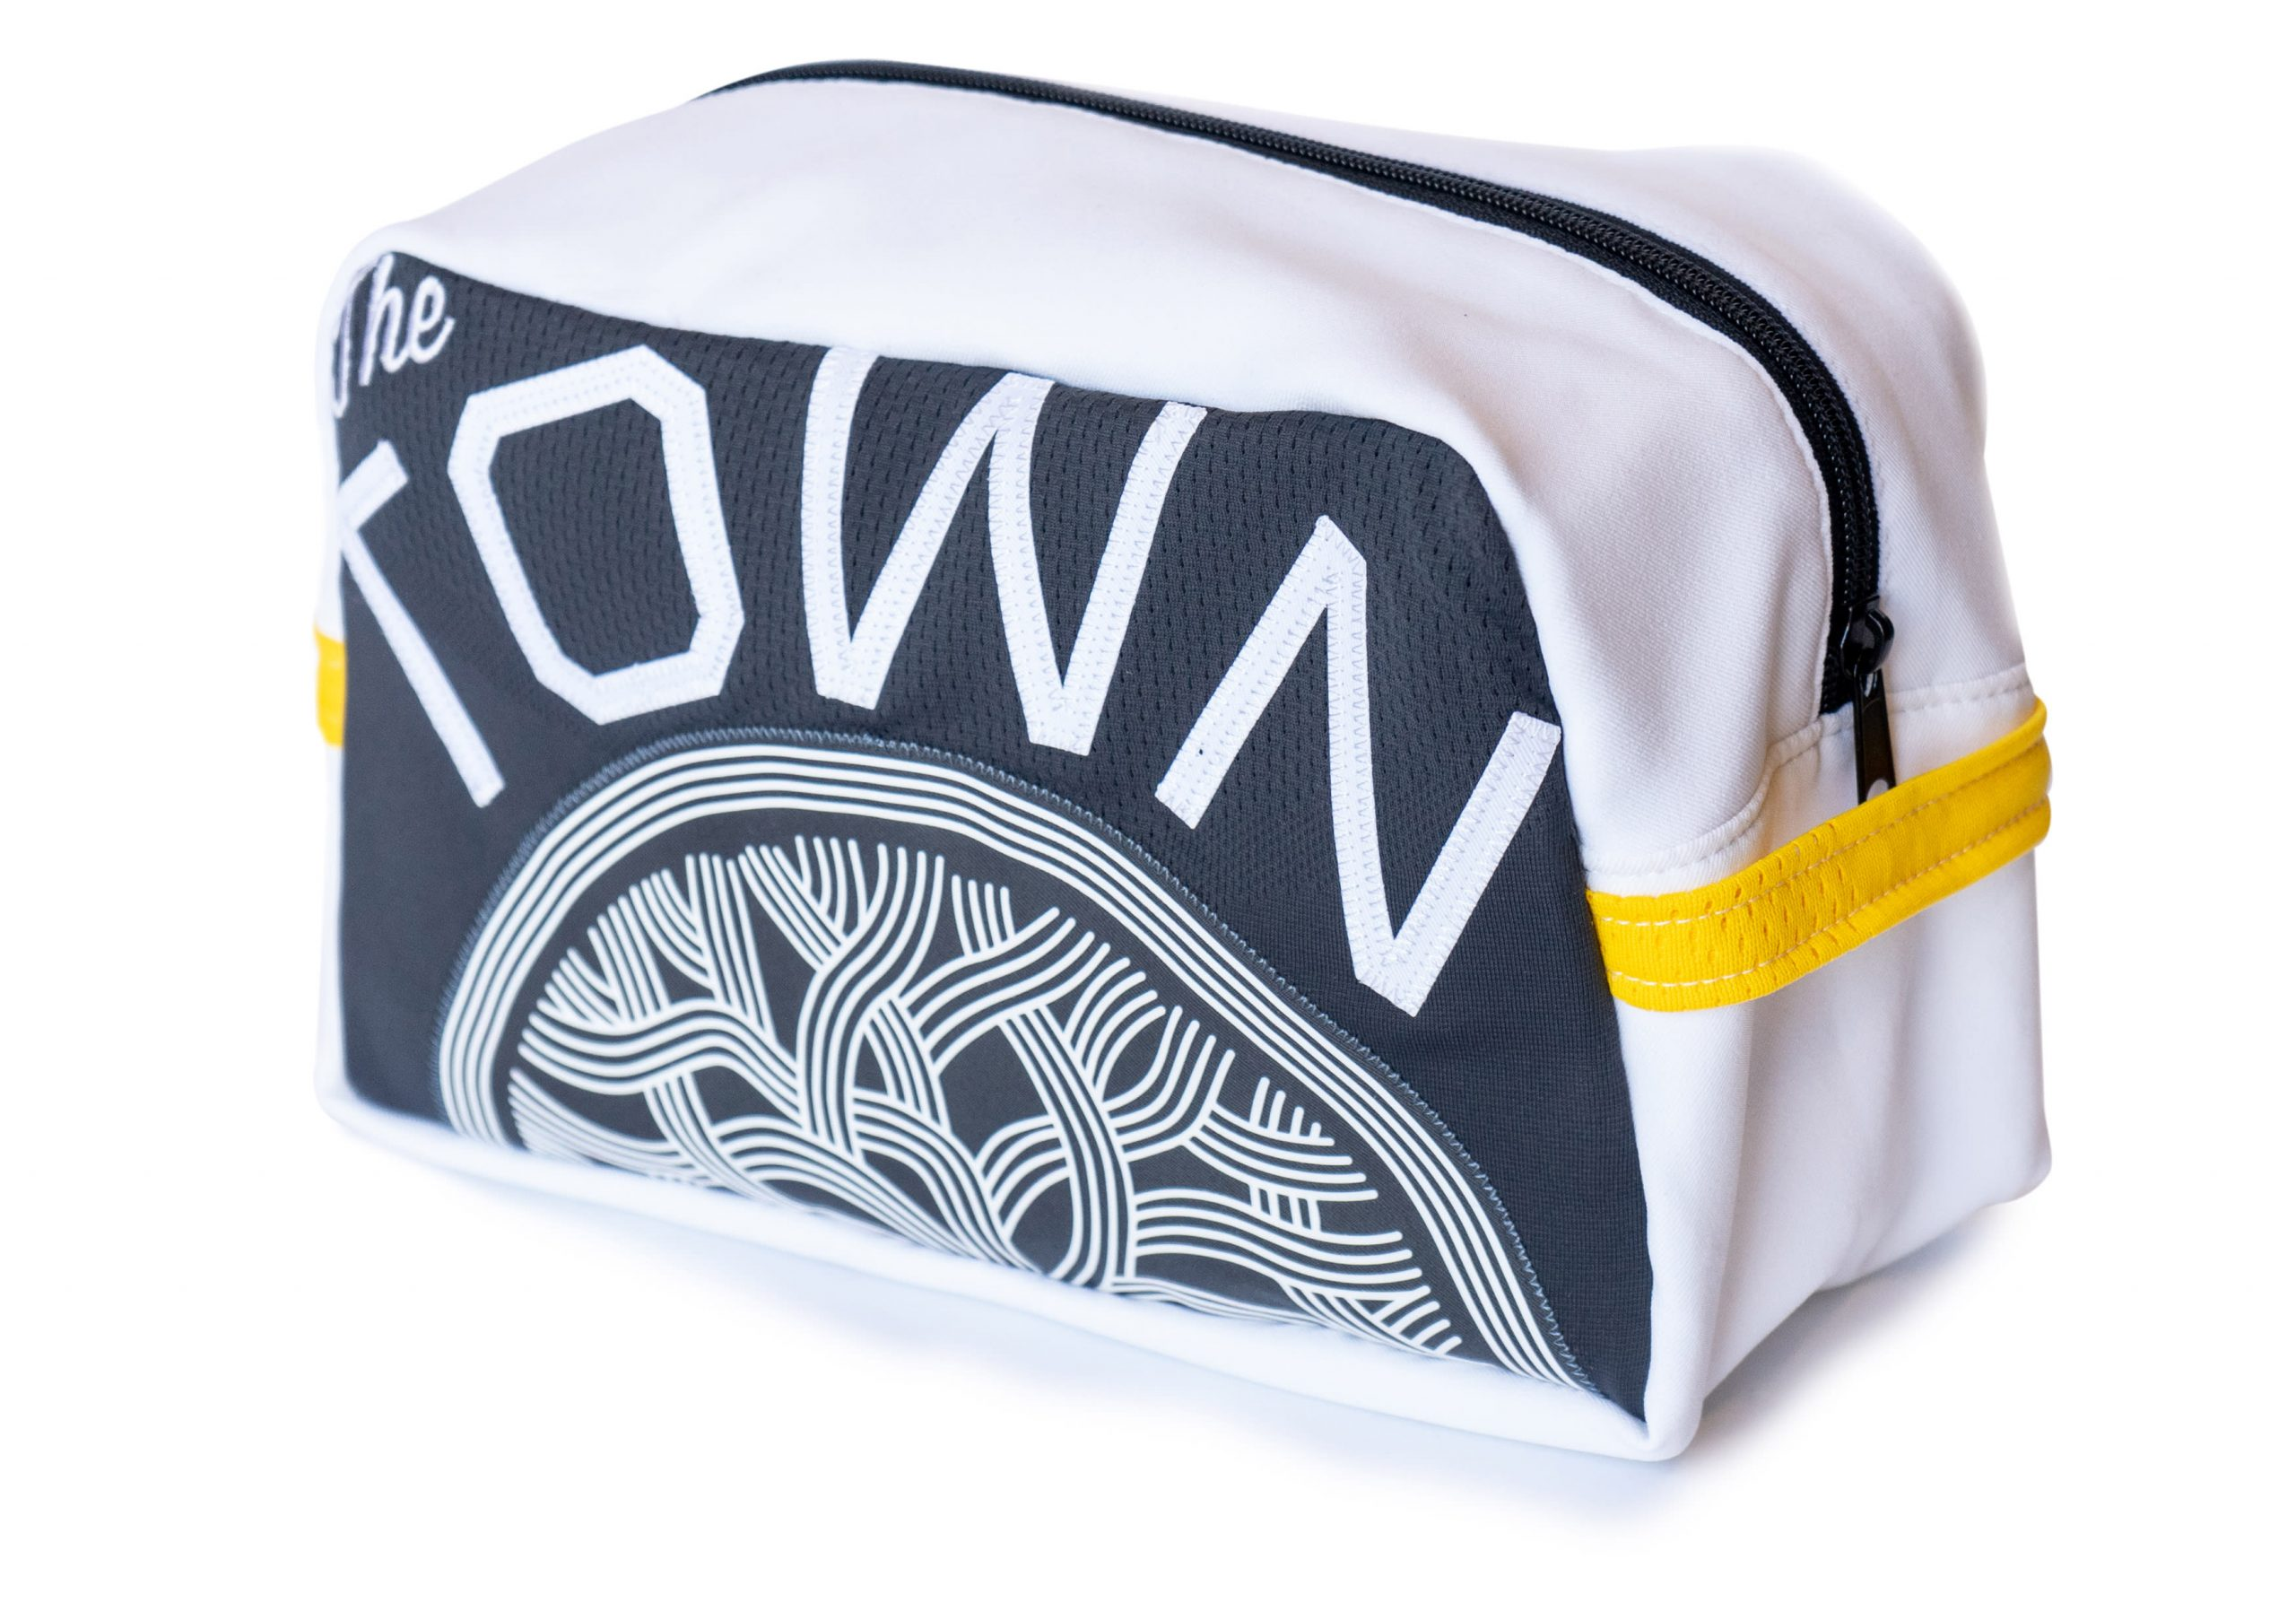 106386874 1581518147705warriors toiletry bag 01262 scaled